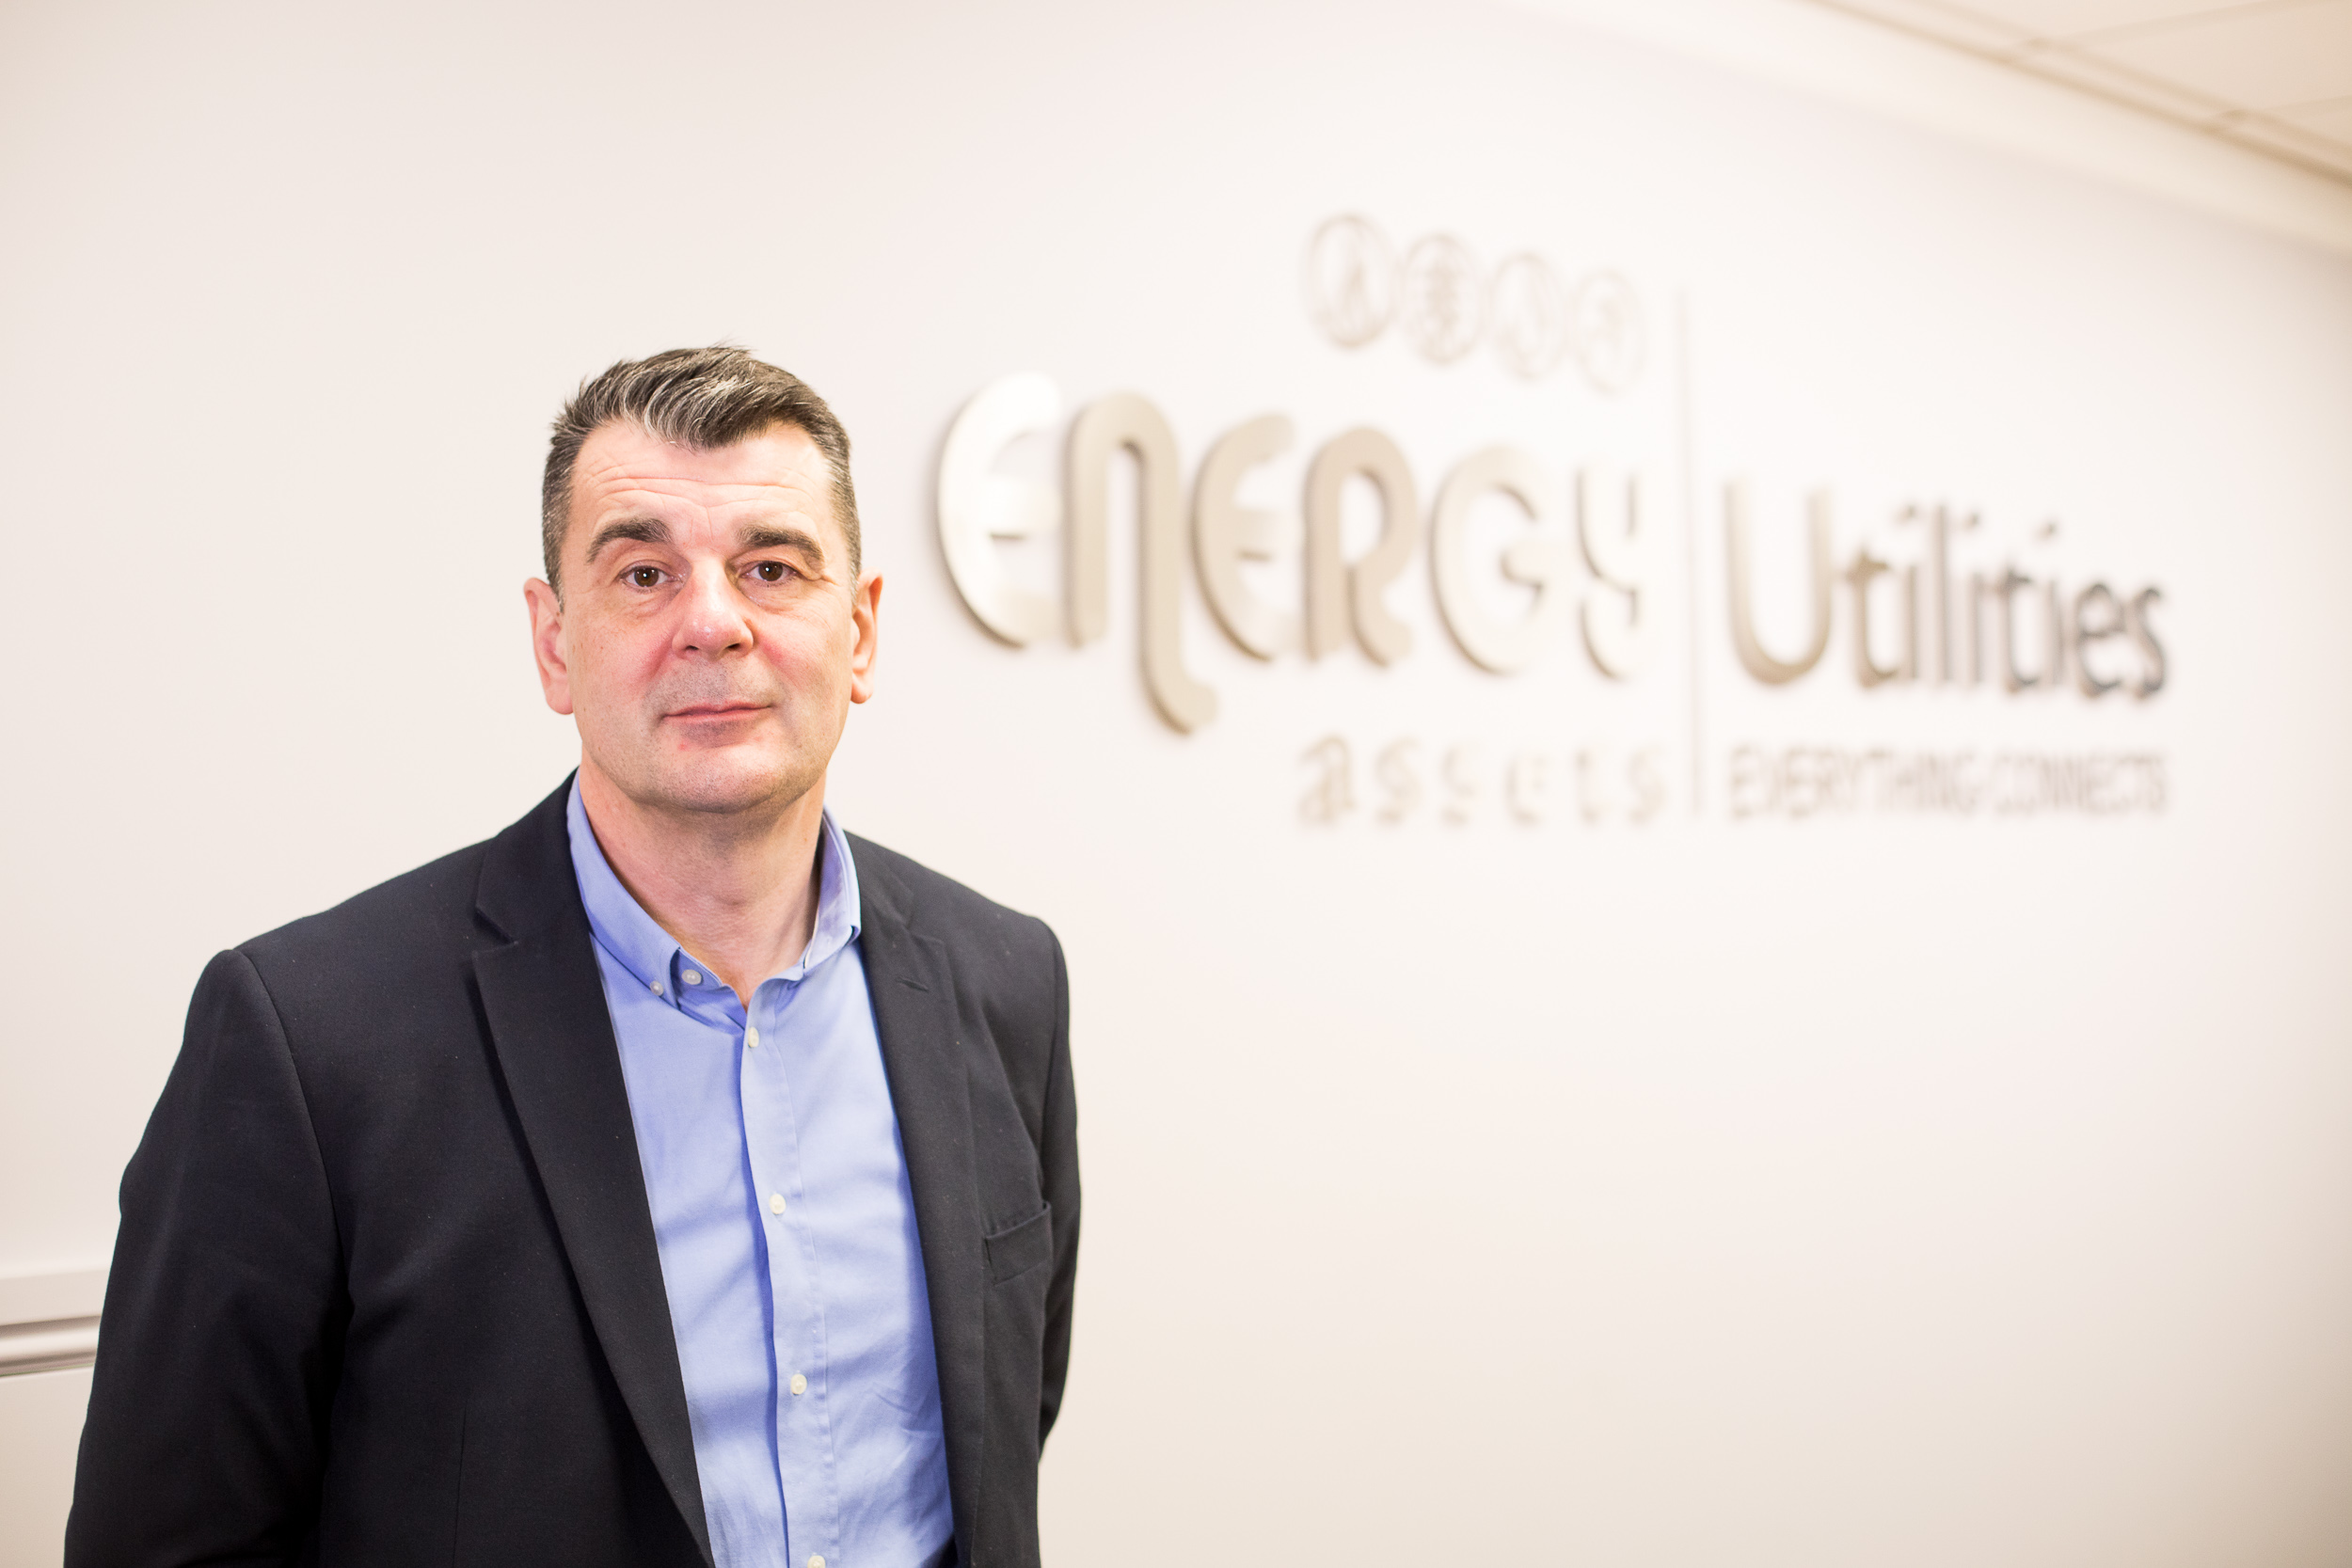 Energy Assets Utilities Expands Leadership Team to Drive Growth